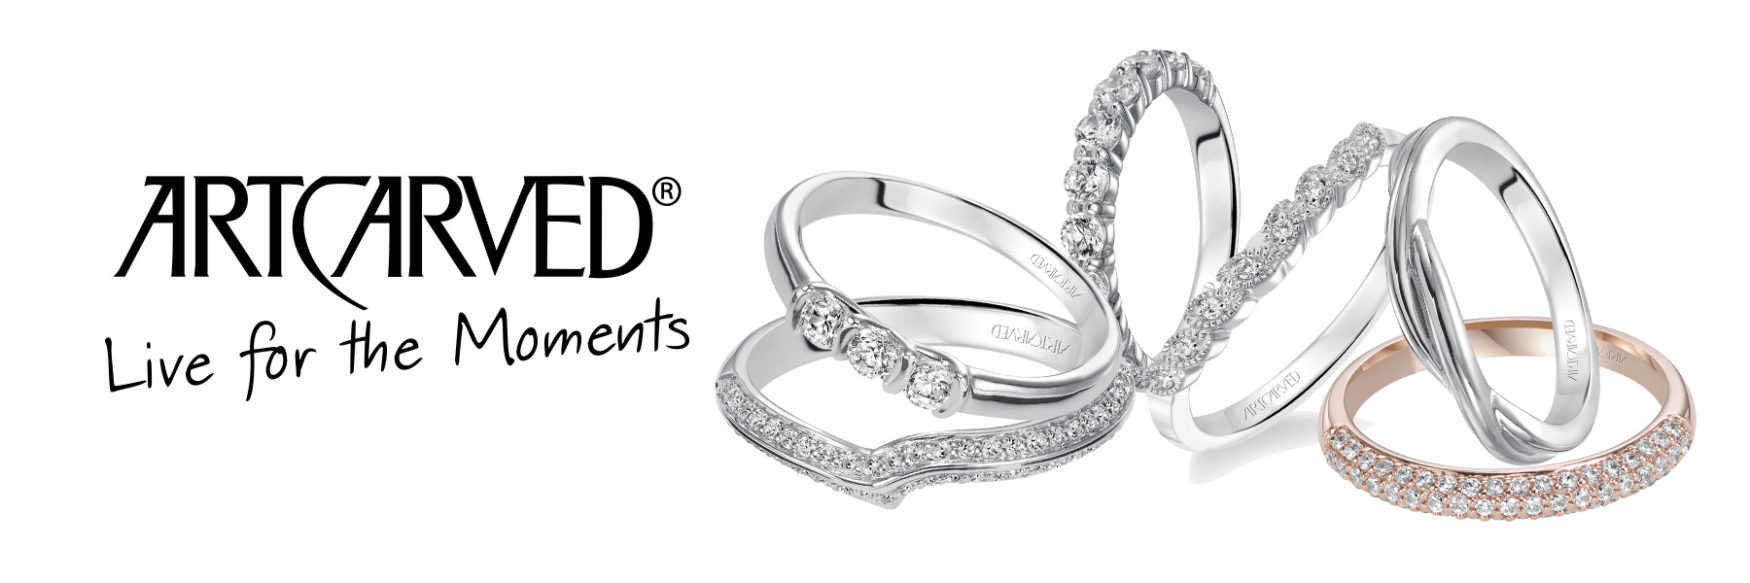 Long Island Wedding Rings - Womens - Art Carved